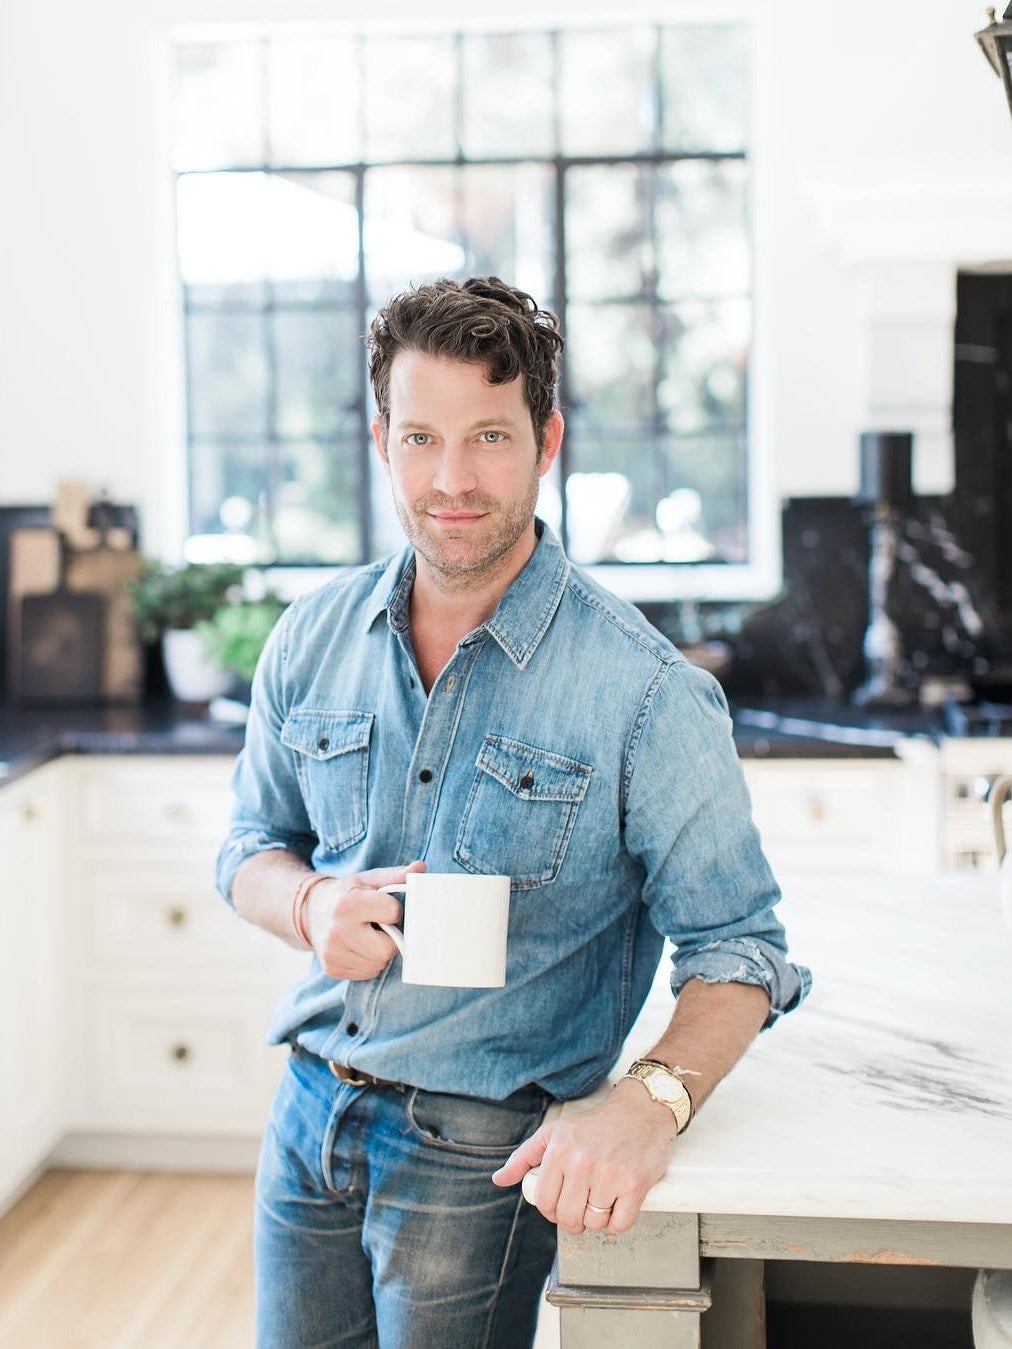 Nate Berkus Can't Get on Board With This Popular Kitchen Trend